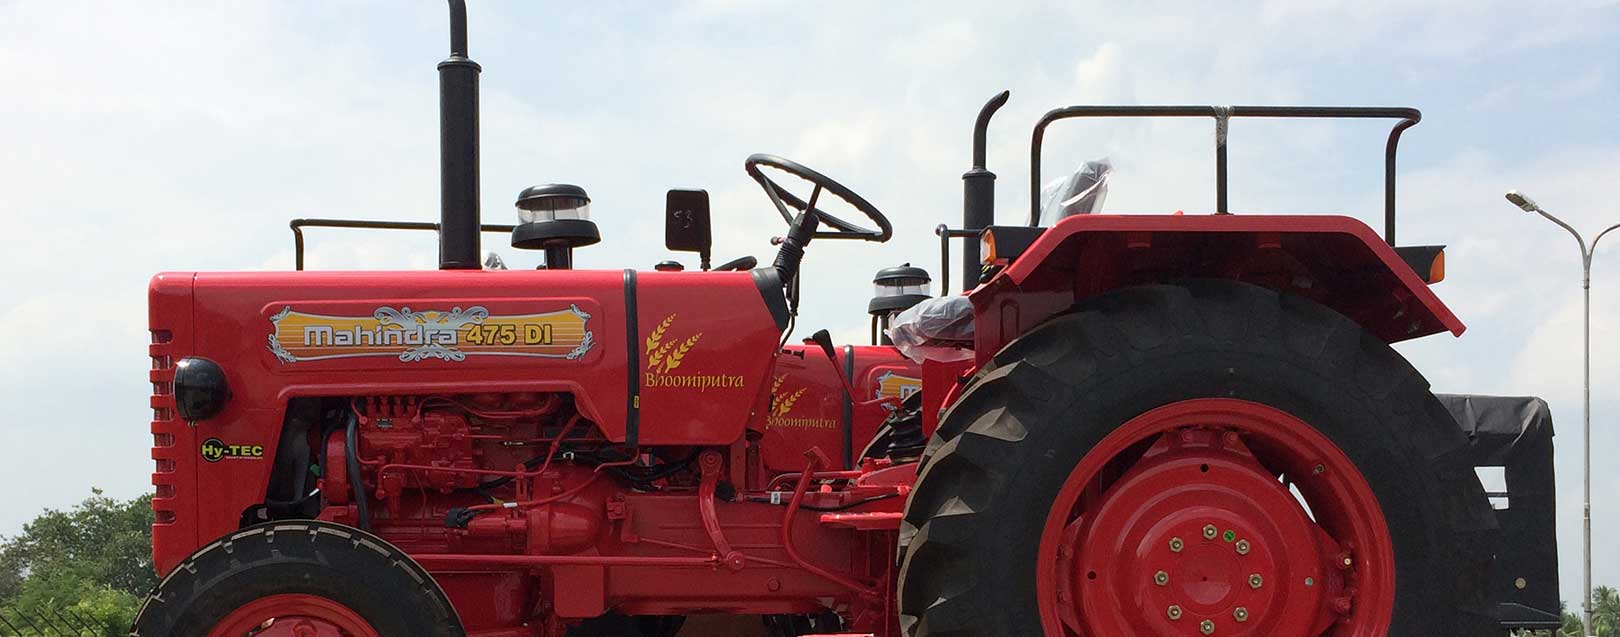 Mahindra investing in future of mobility; including driverless tractors